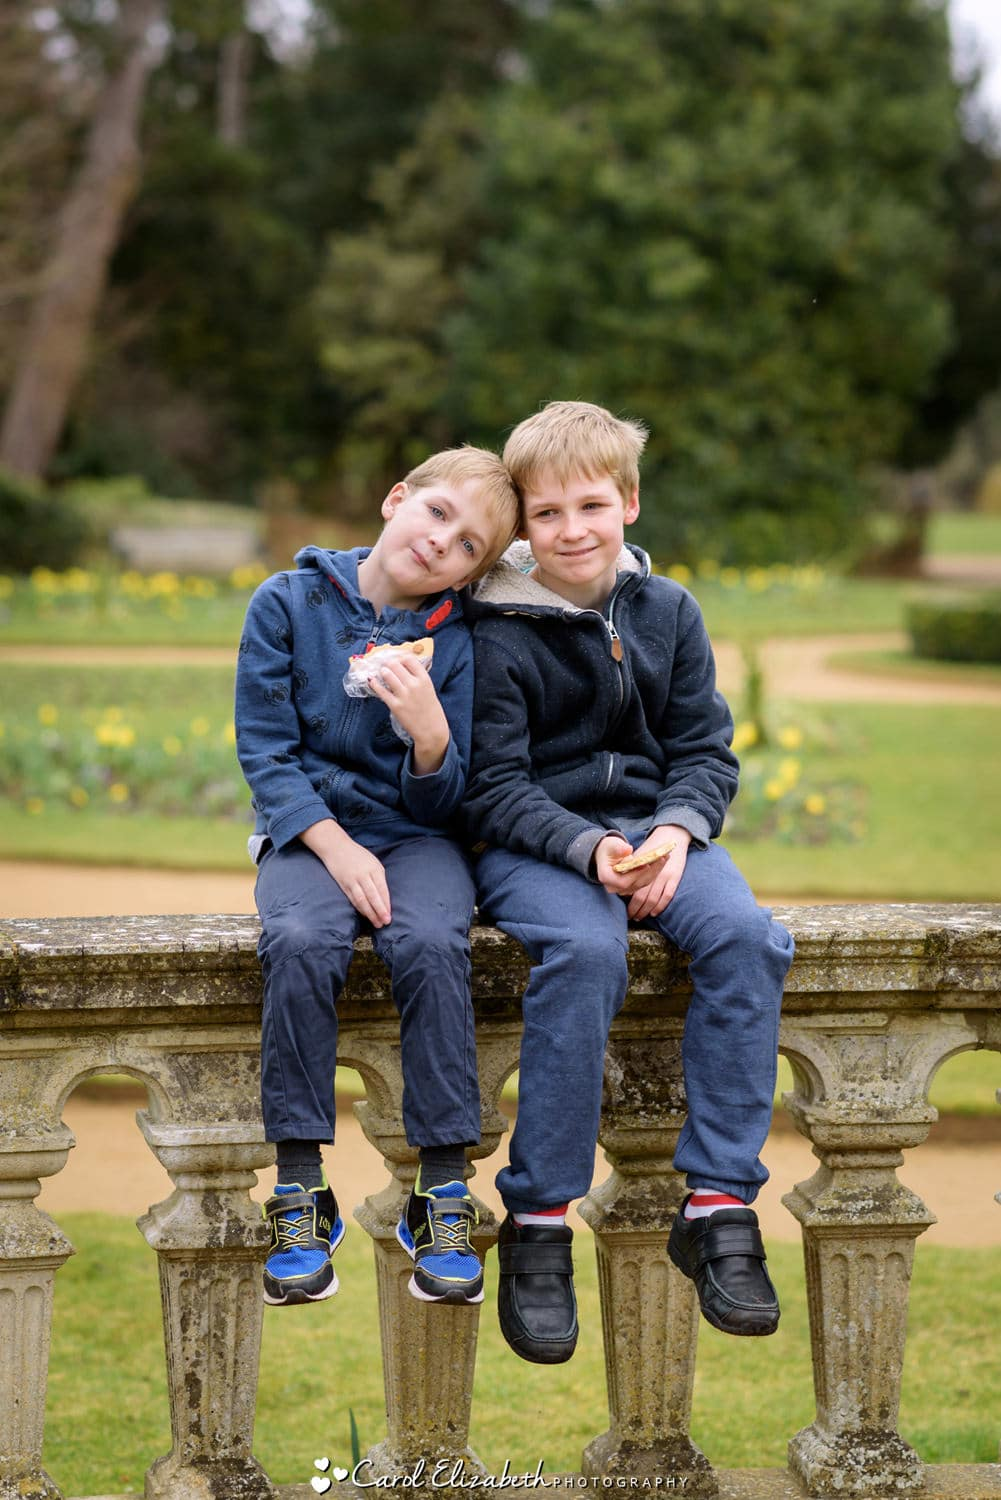 Natural childrens portraits Abingdon